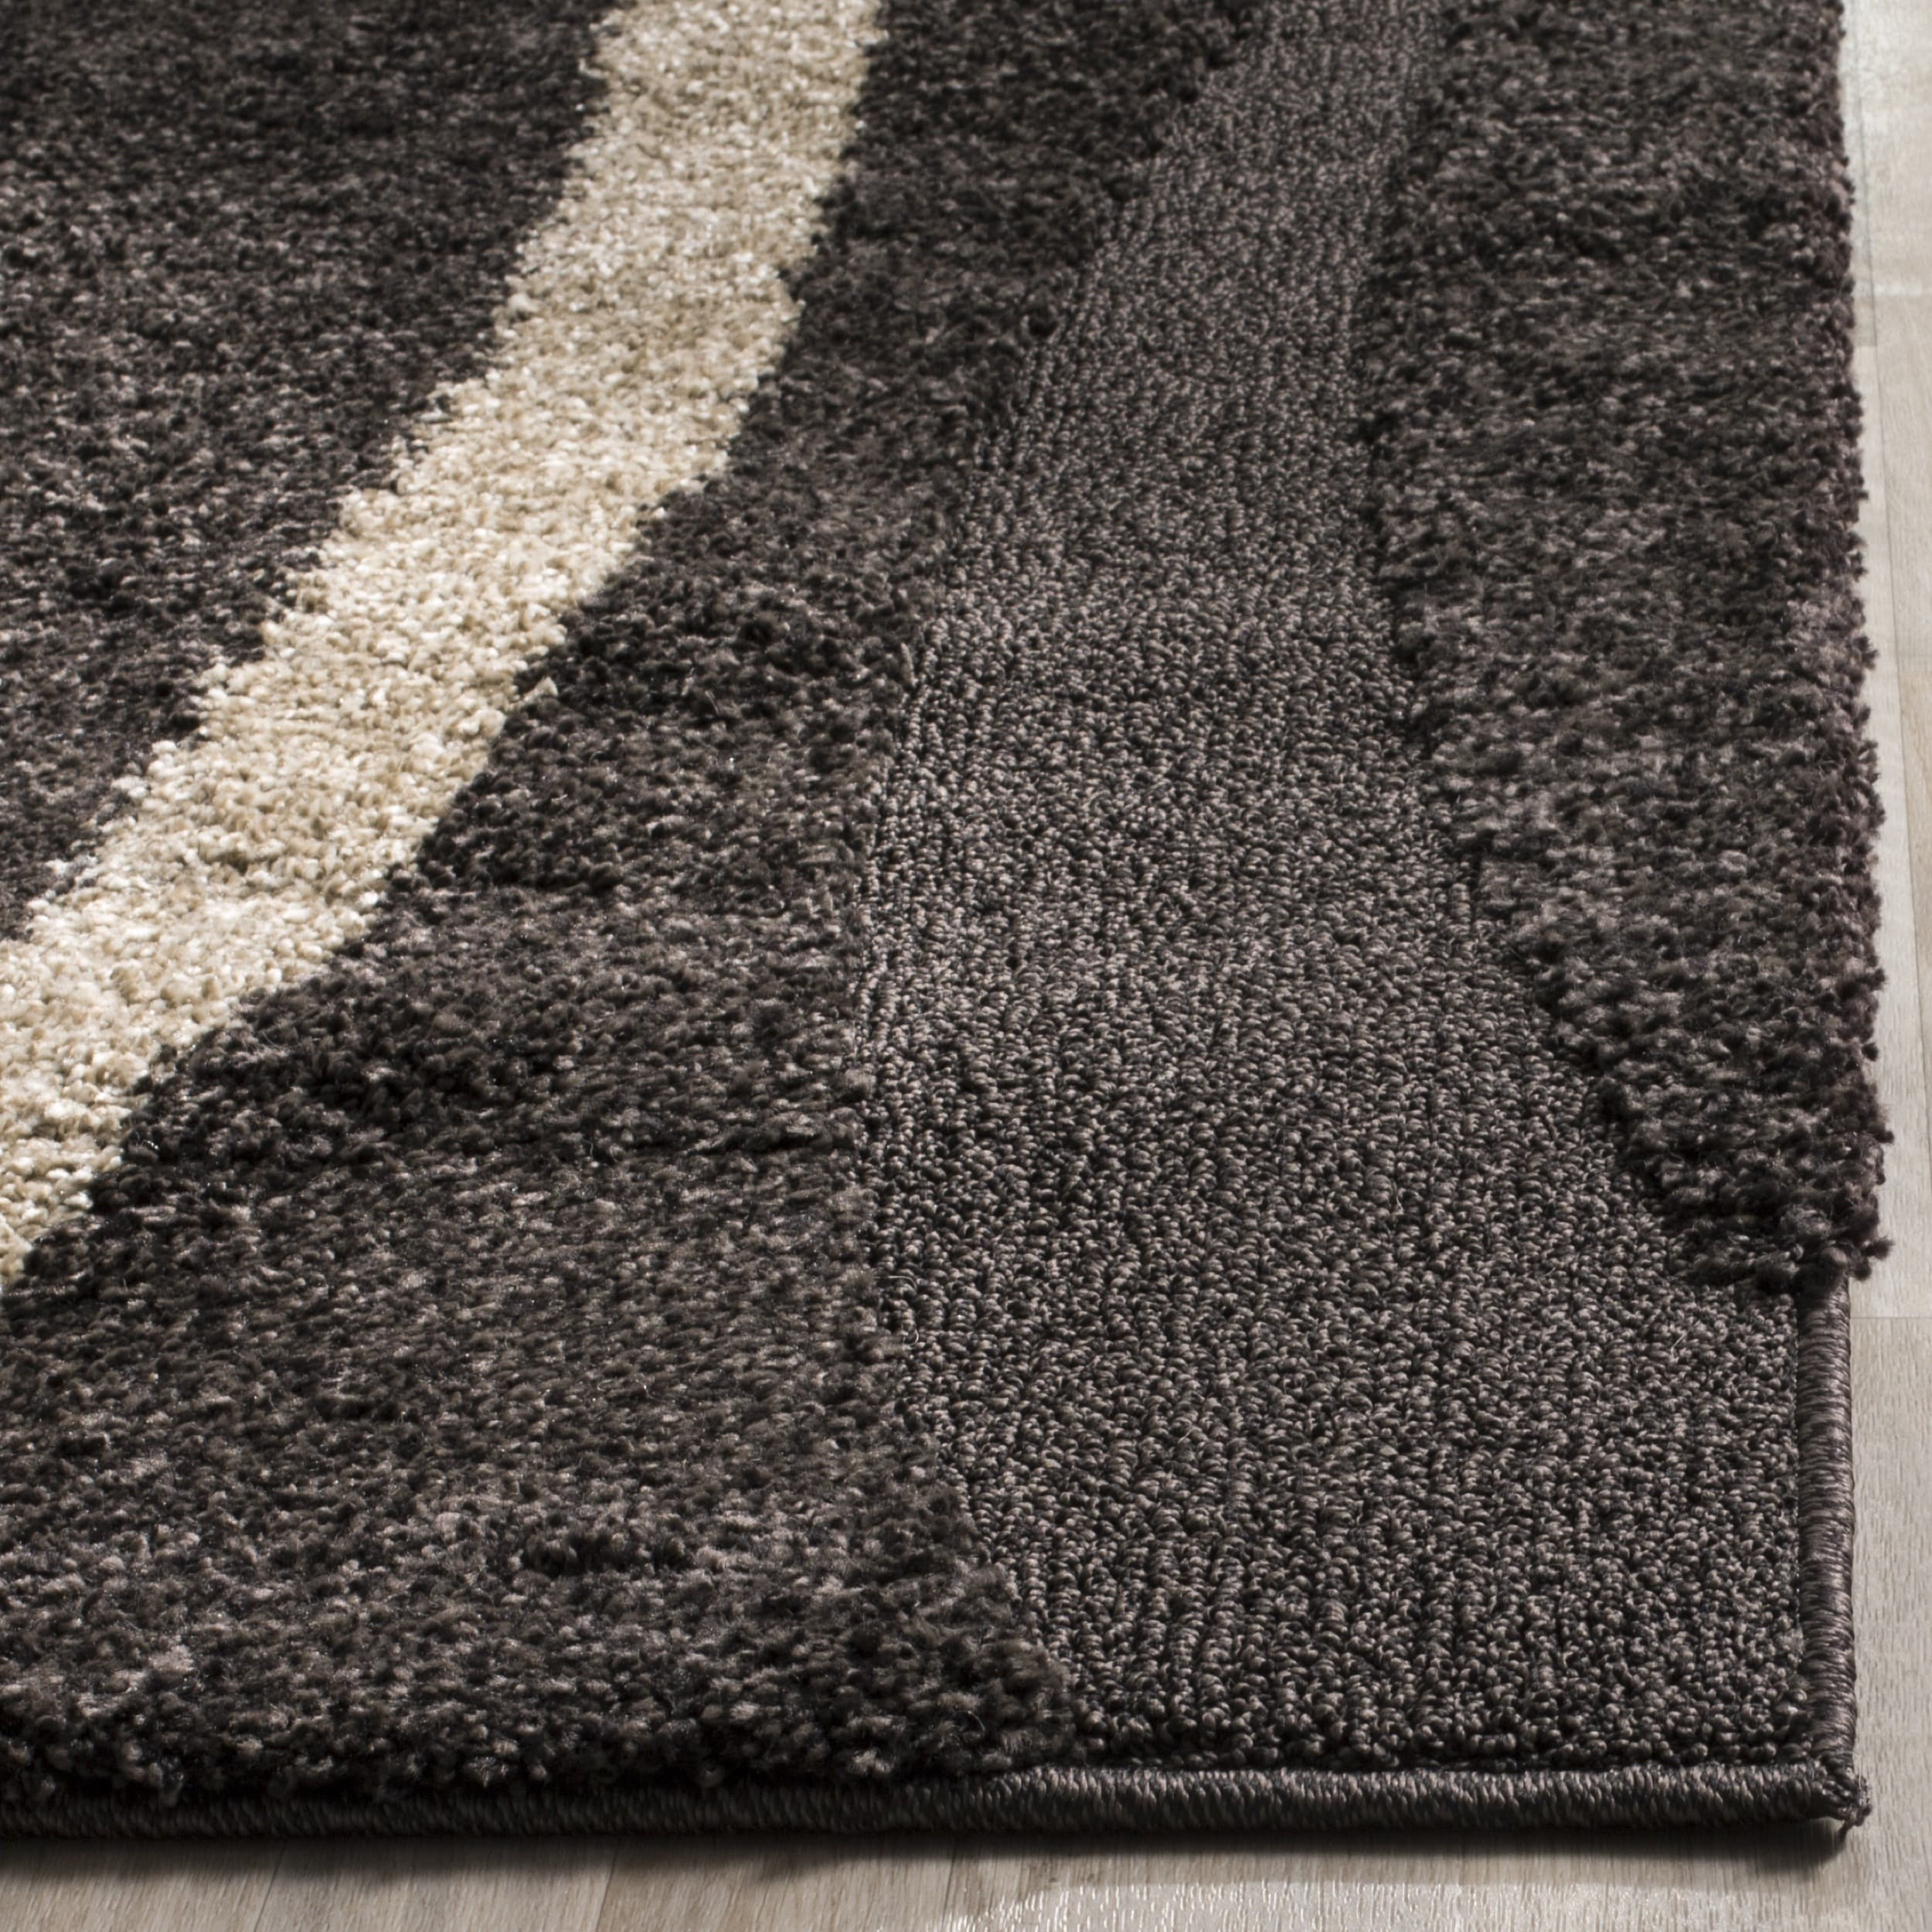 zoom brown shape chocolate white large rug shag black fullxfull bedroom plush mcax mat soft shaggy faux listing room il luxury rectangle fur living